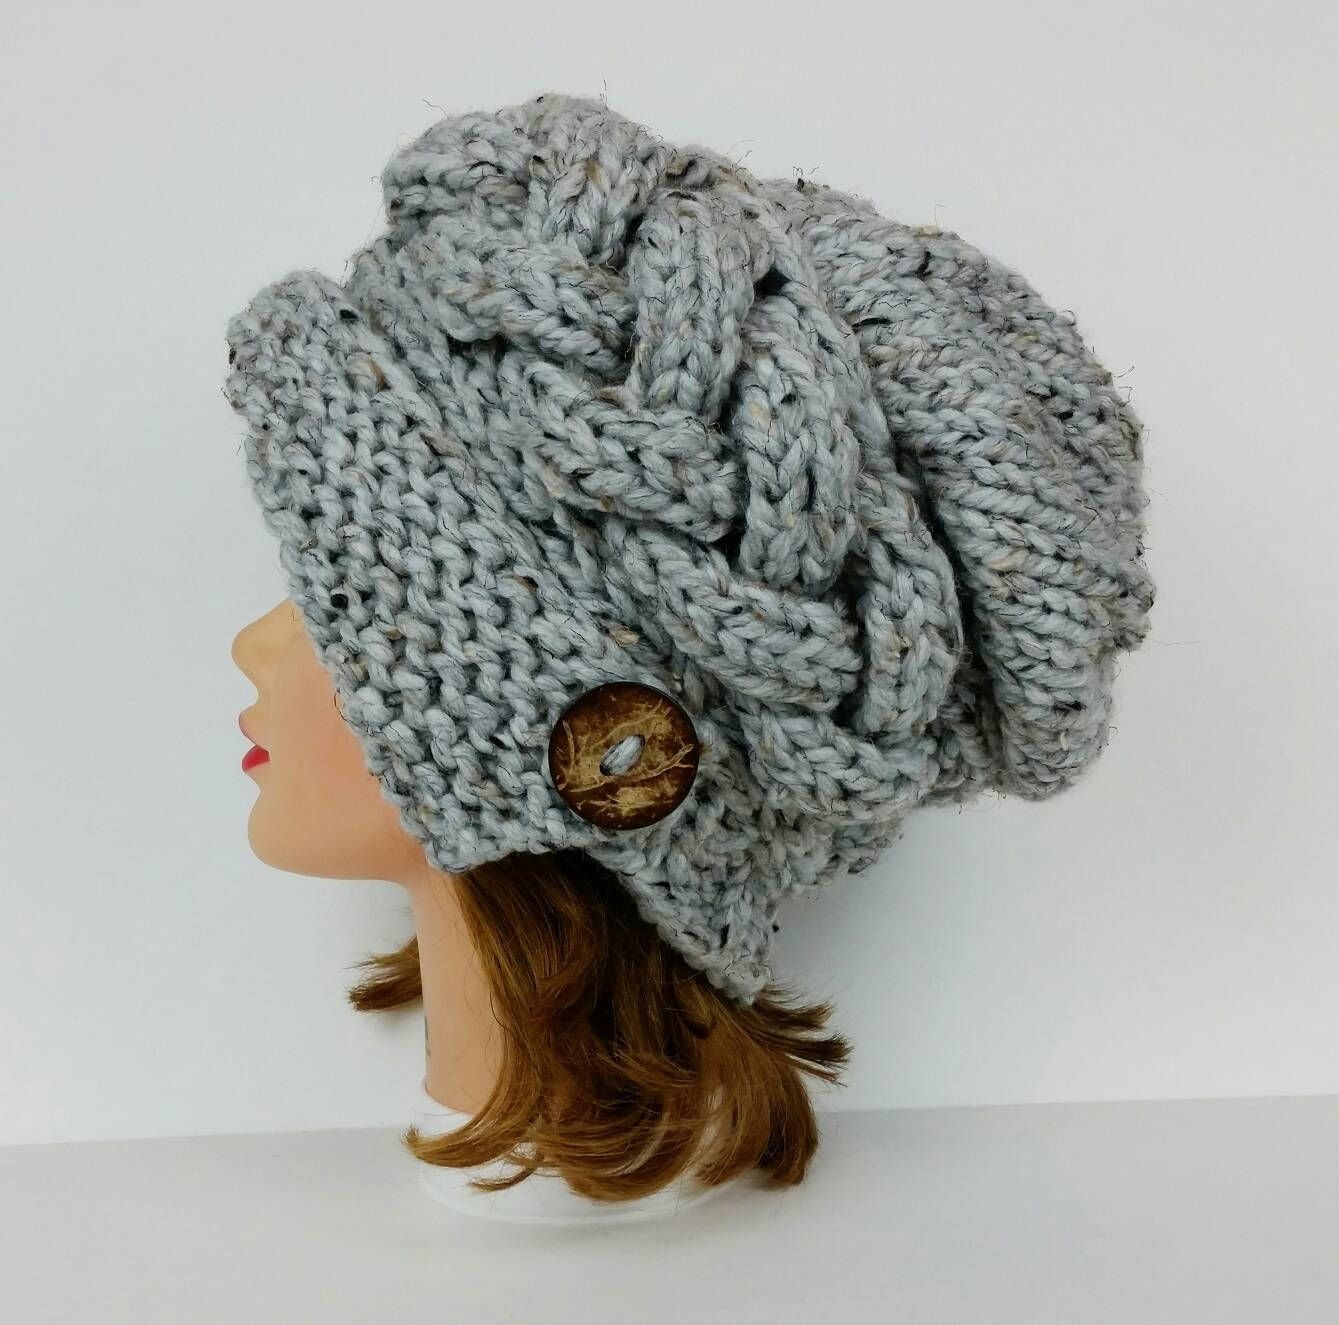 6088cf6cd5e Cloche Hat - 1920s Cloche Hat - Slouchy Hat With Button - Cable Knit Hat -  Flapper Hat - Chunky Knit Hat Women - Gray Hat - Knit Accessories by ...